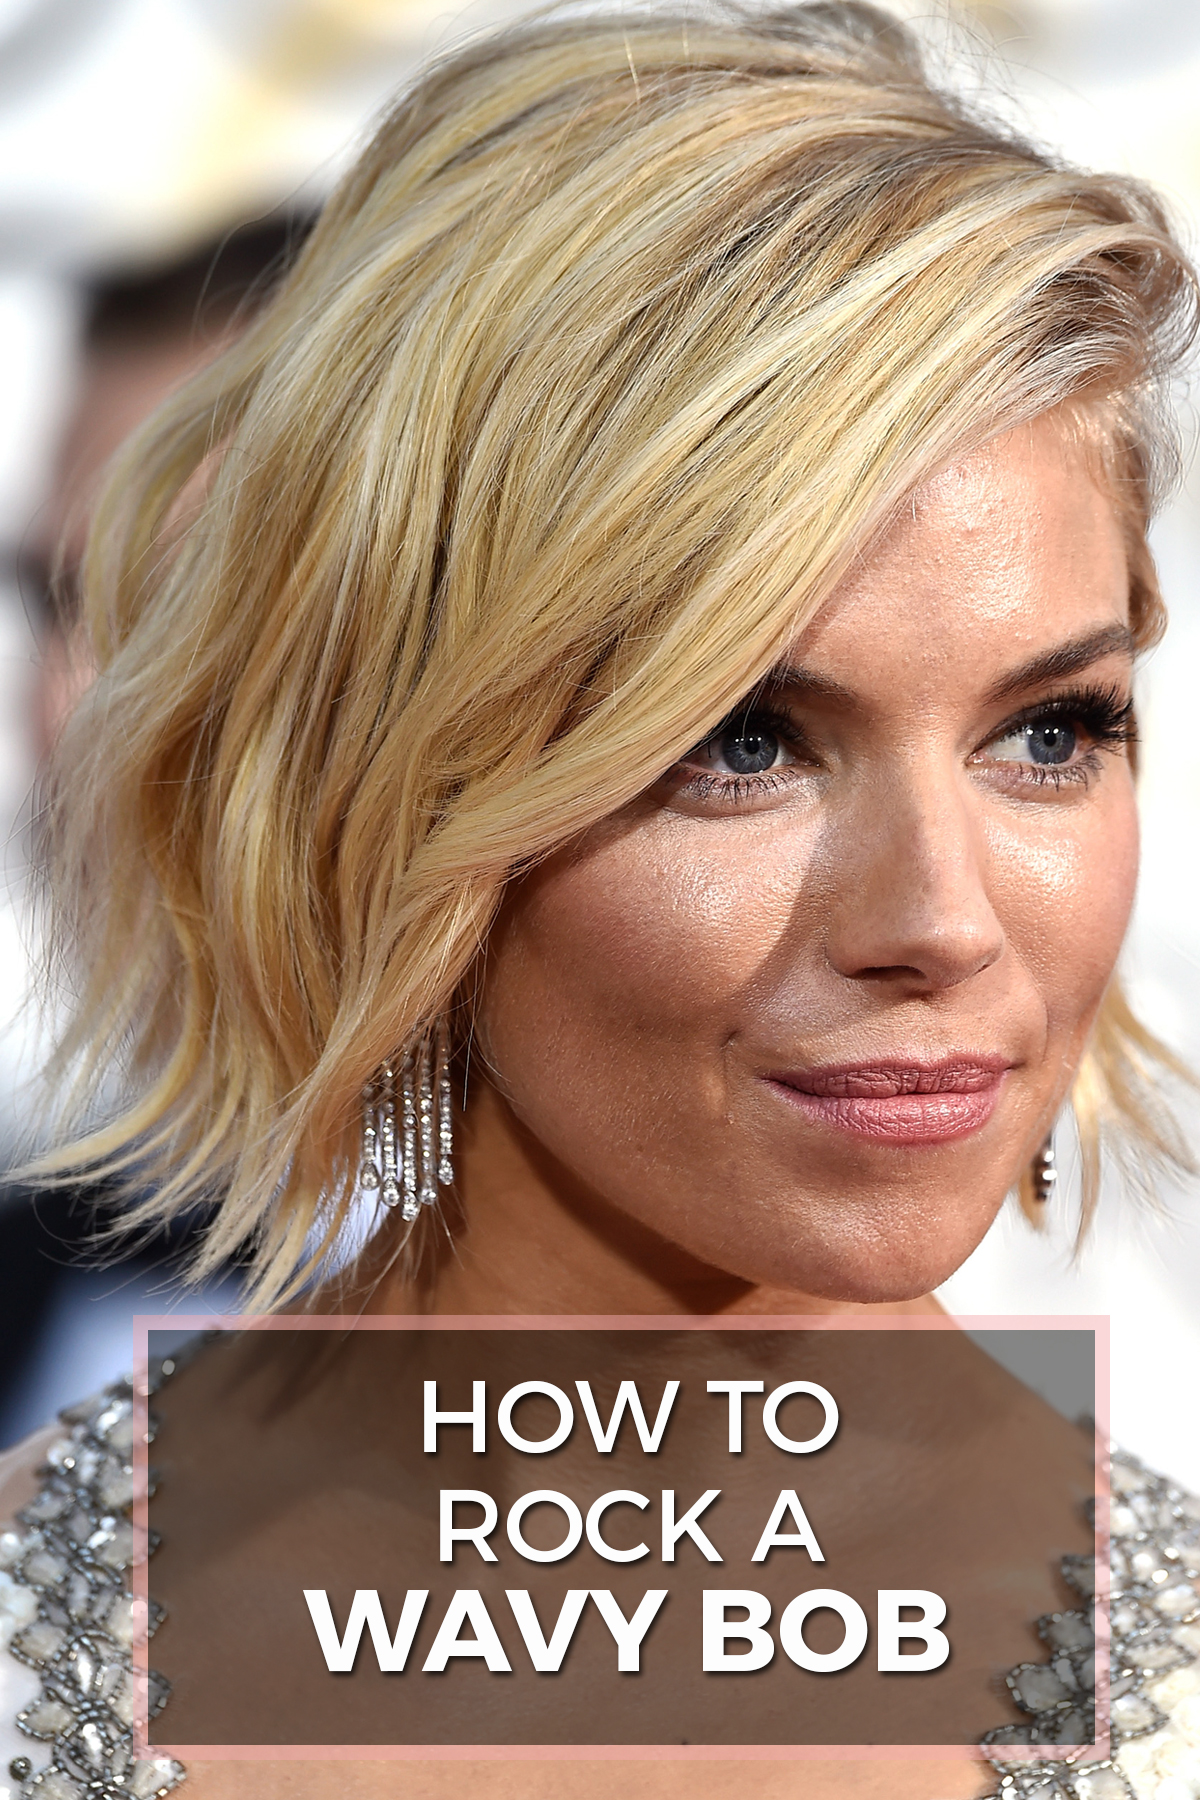 Awesome Wavy Bob Hairstyles How To Rock This Summer39S 39It39 Cut The Short Hairstyles Gunalazisus